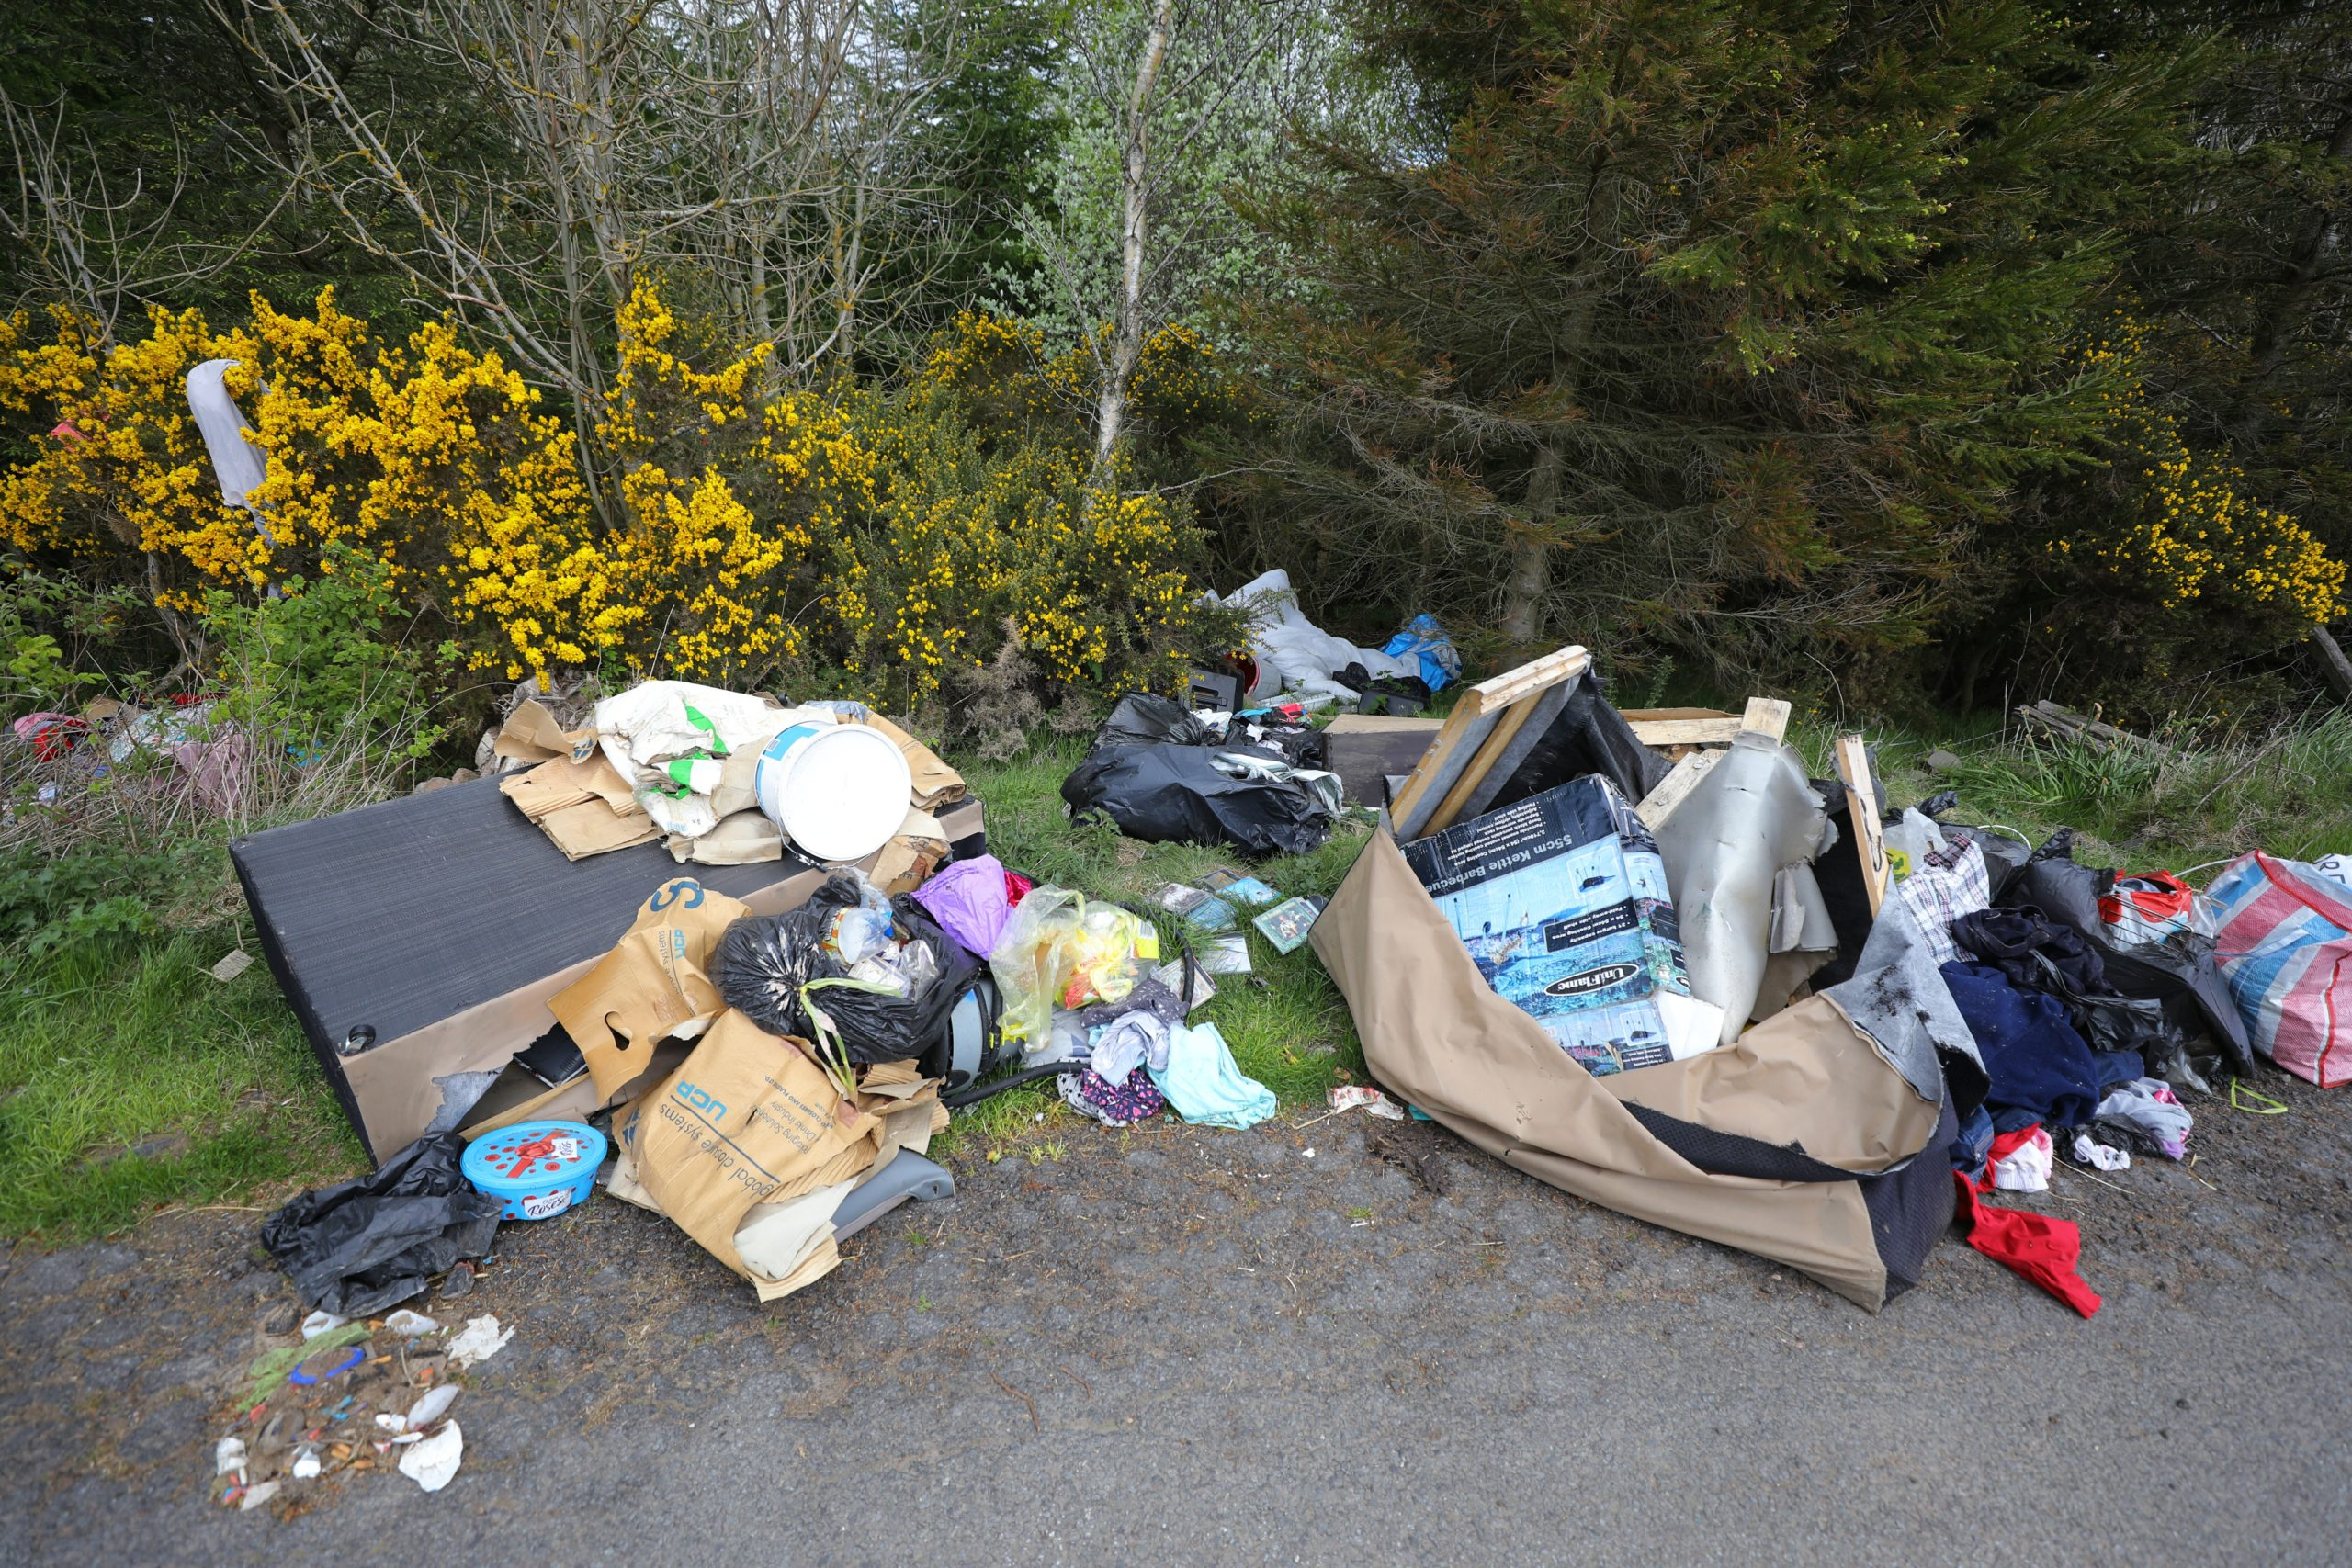 The mounds of waste found in Perthshire